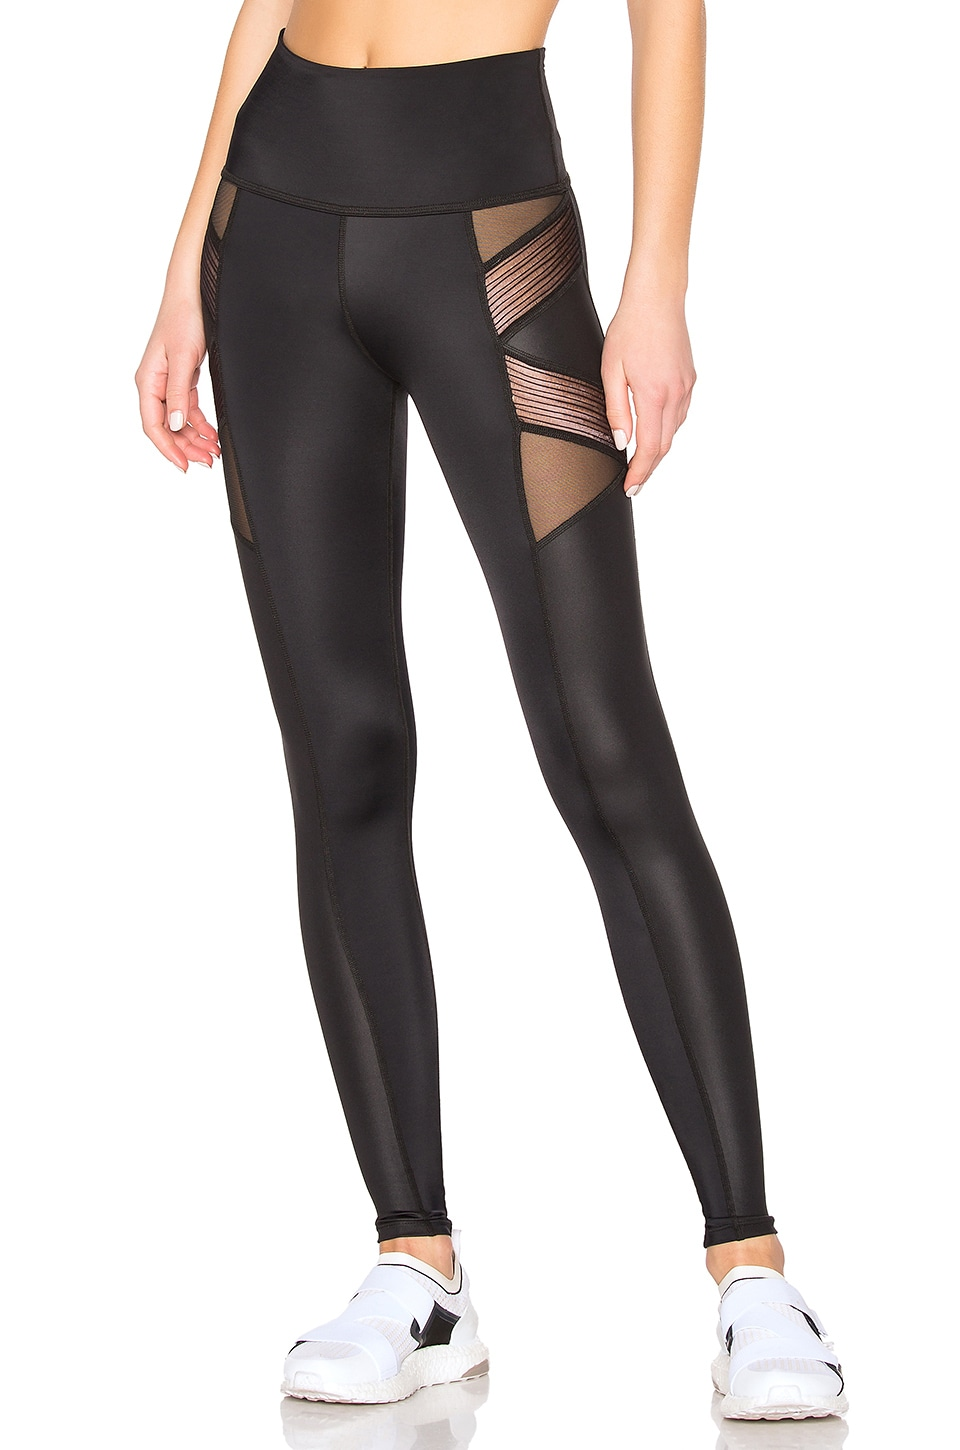 Beyond Yoga Compression Free And Clear High Waisted Legging in Black